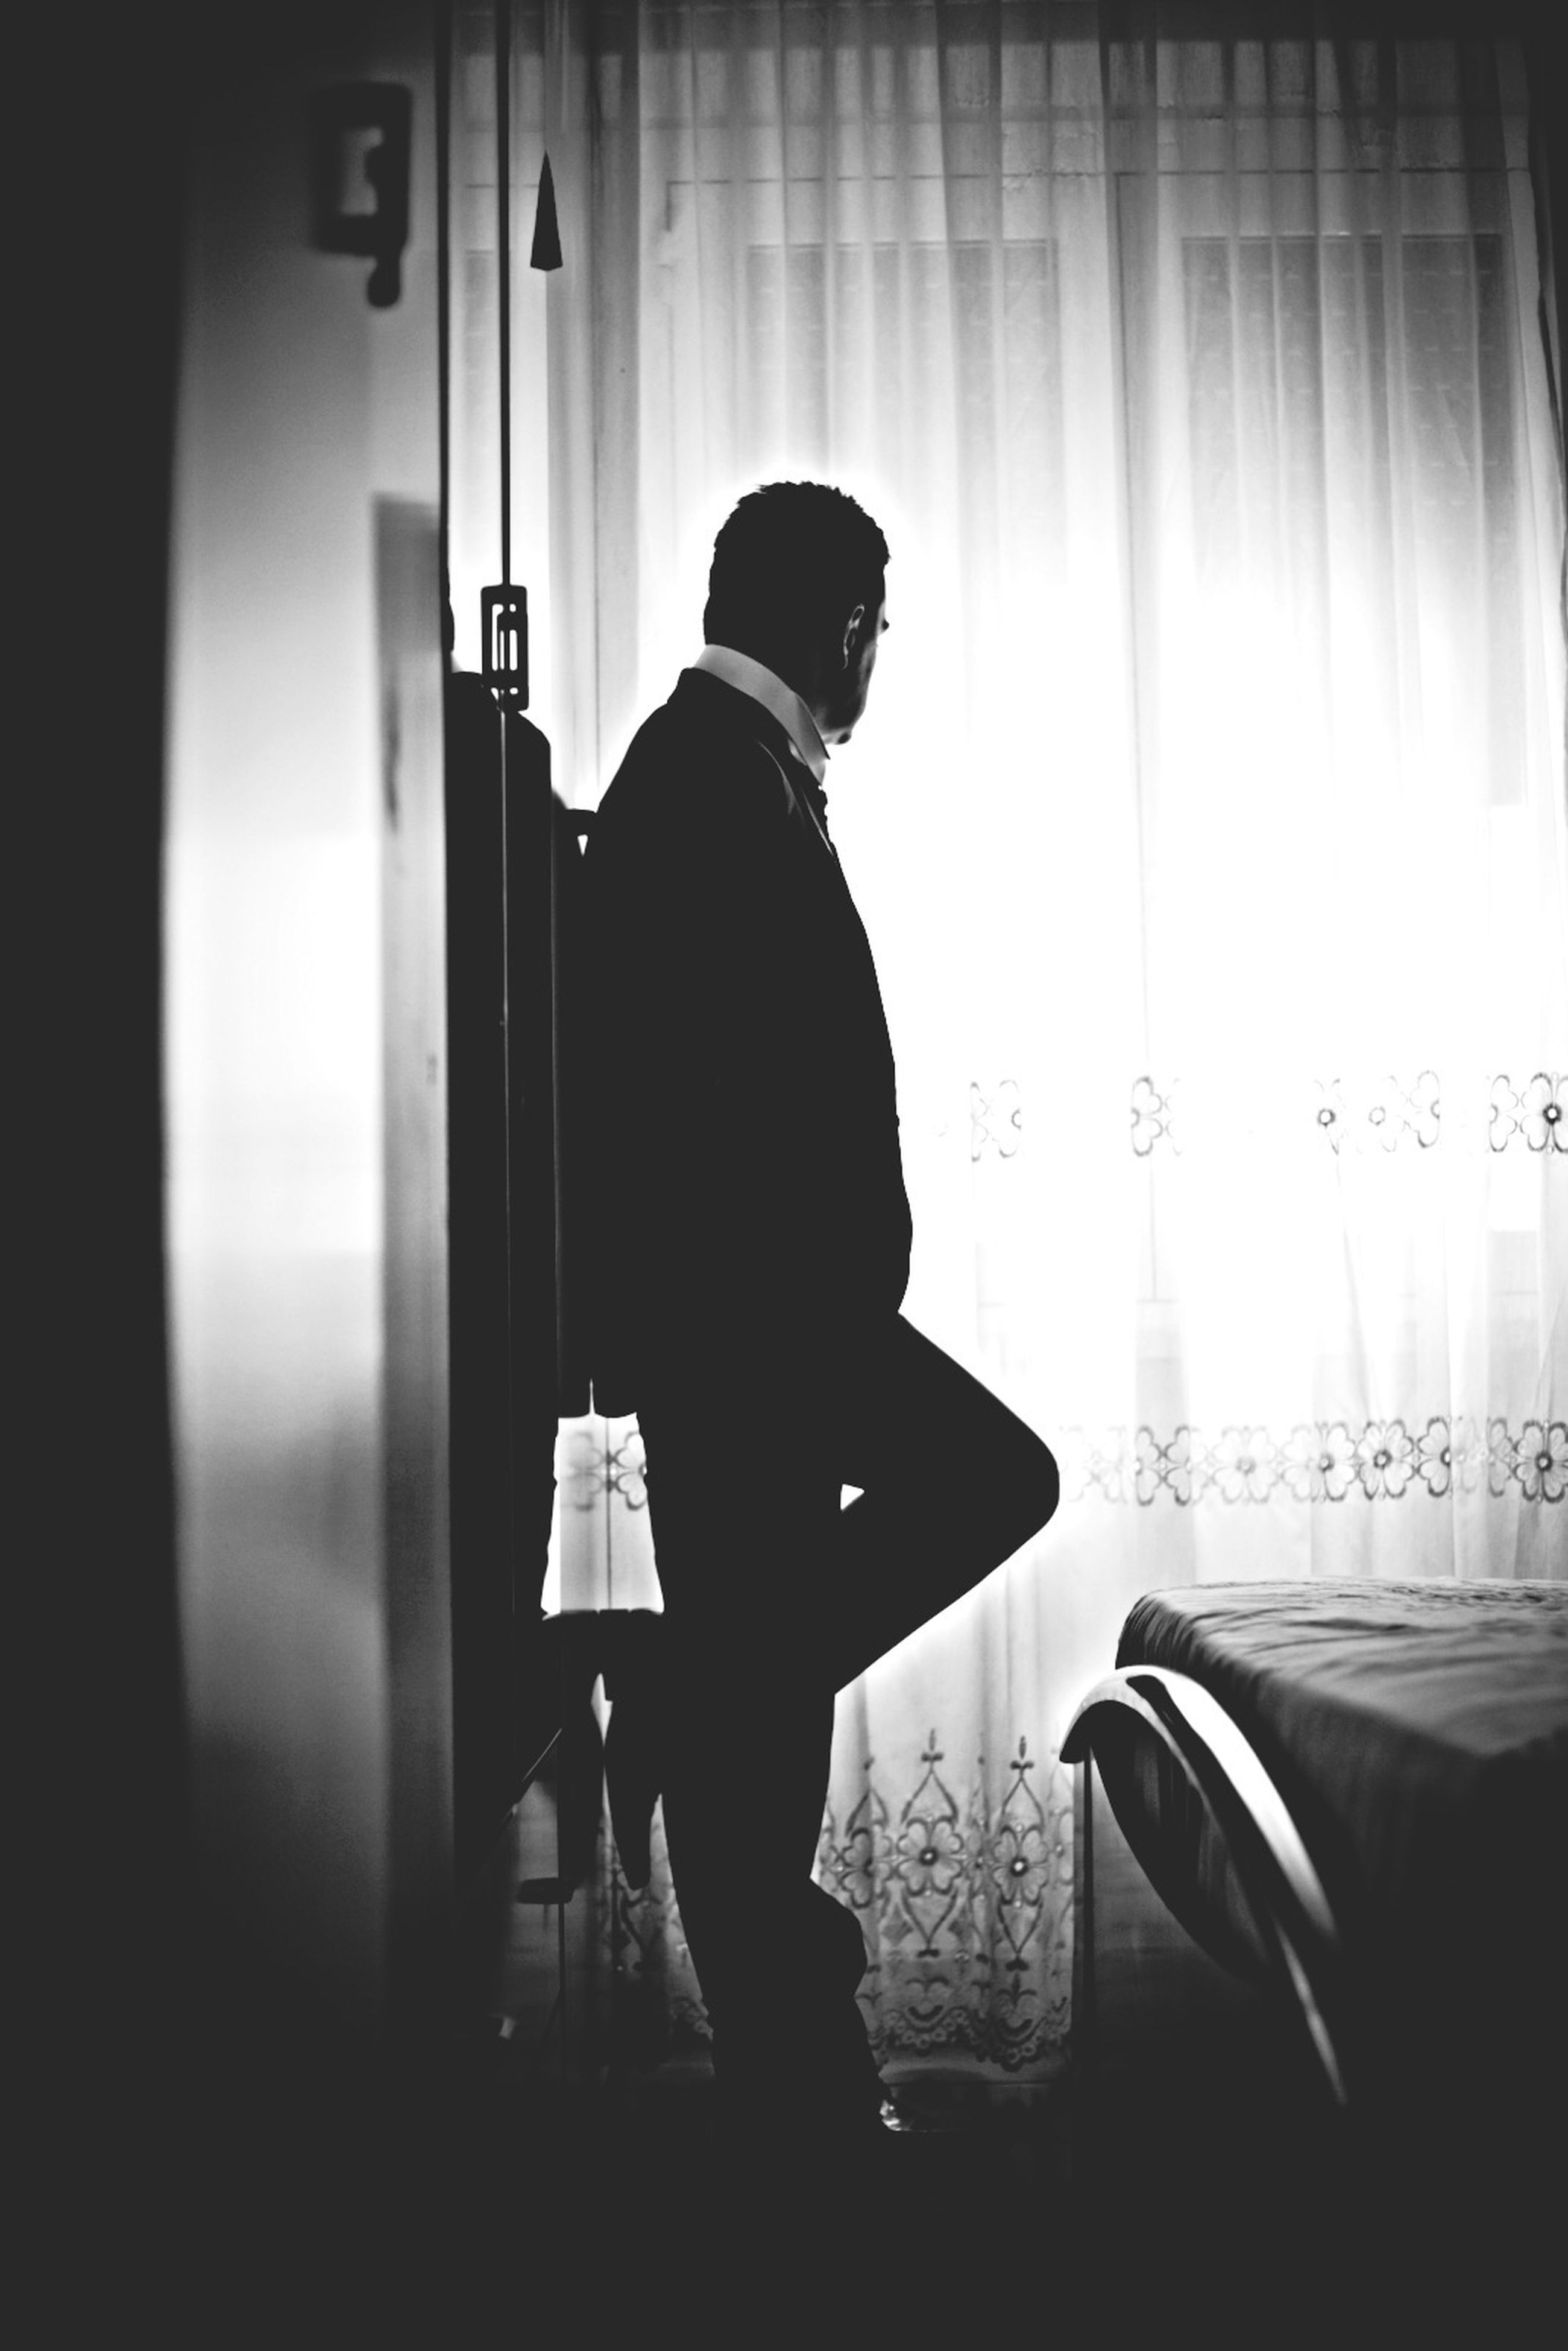 indoors, lifestyles, rear view, men, home interior, leisure activity, table, sitting, window, full length, standing, casual clothing, person, domestic life, chair, domestic room, curtain, silhouette